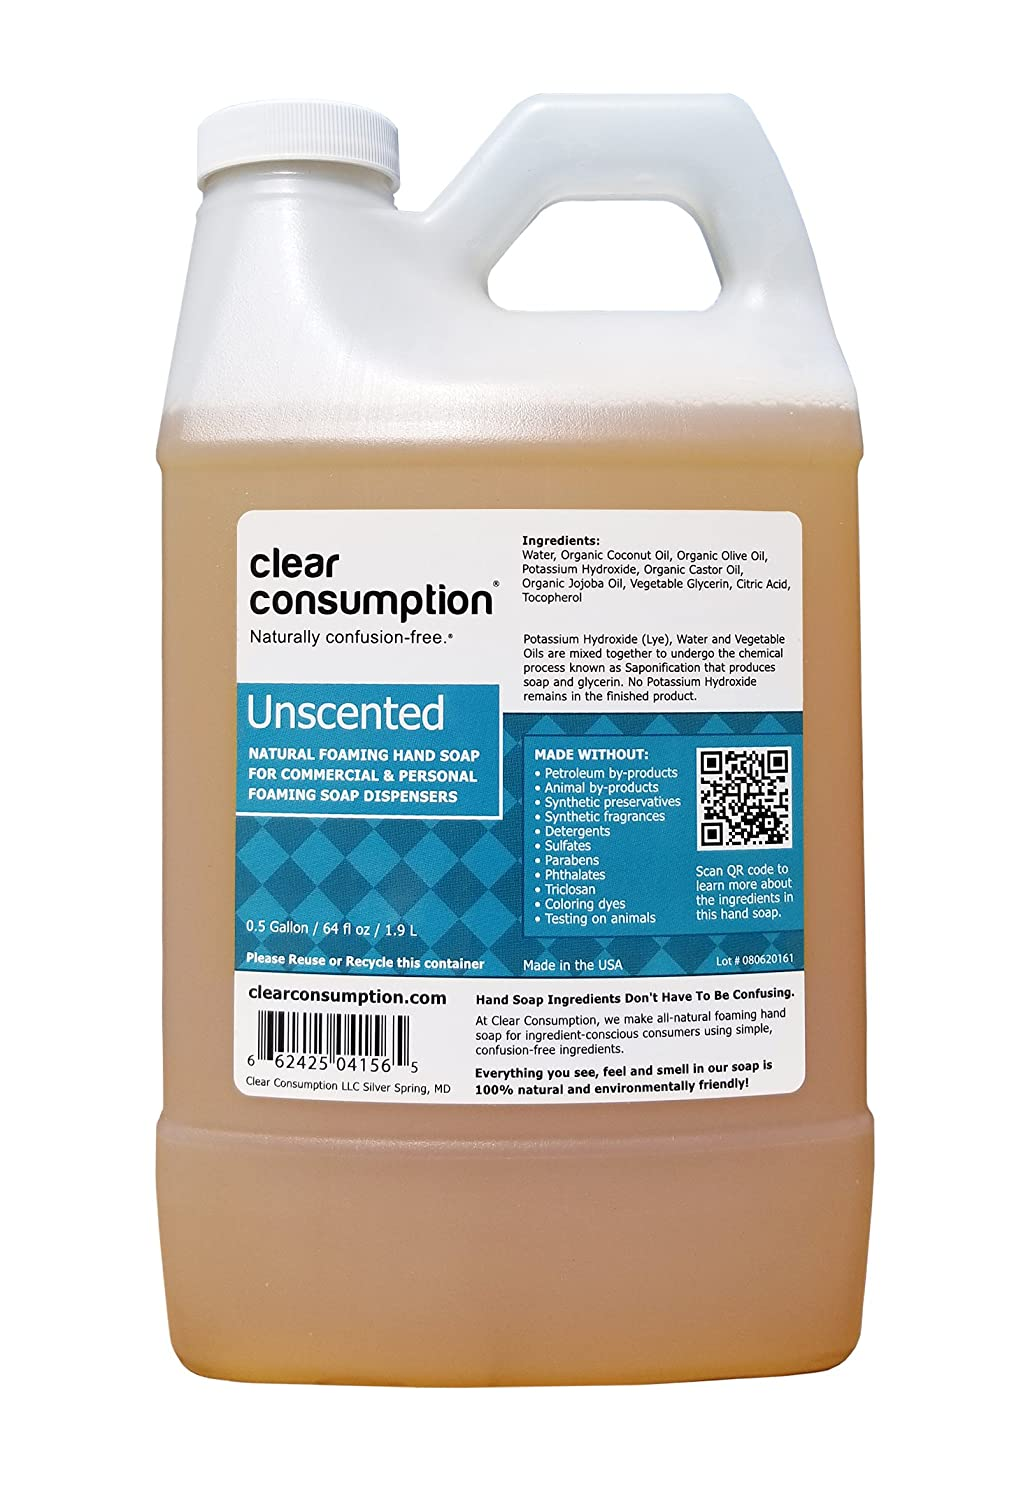 Clear Consumption Natural Unscented Foaming Hand Soap Refill 1/2 Gallon (64 oz) - Made from USDA Organic Vegetable Oils - For Commercial & Personal Foaming Soap Dispensers